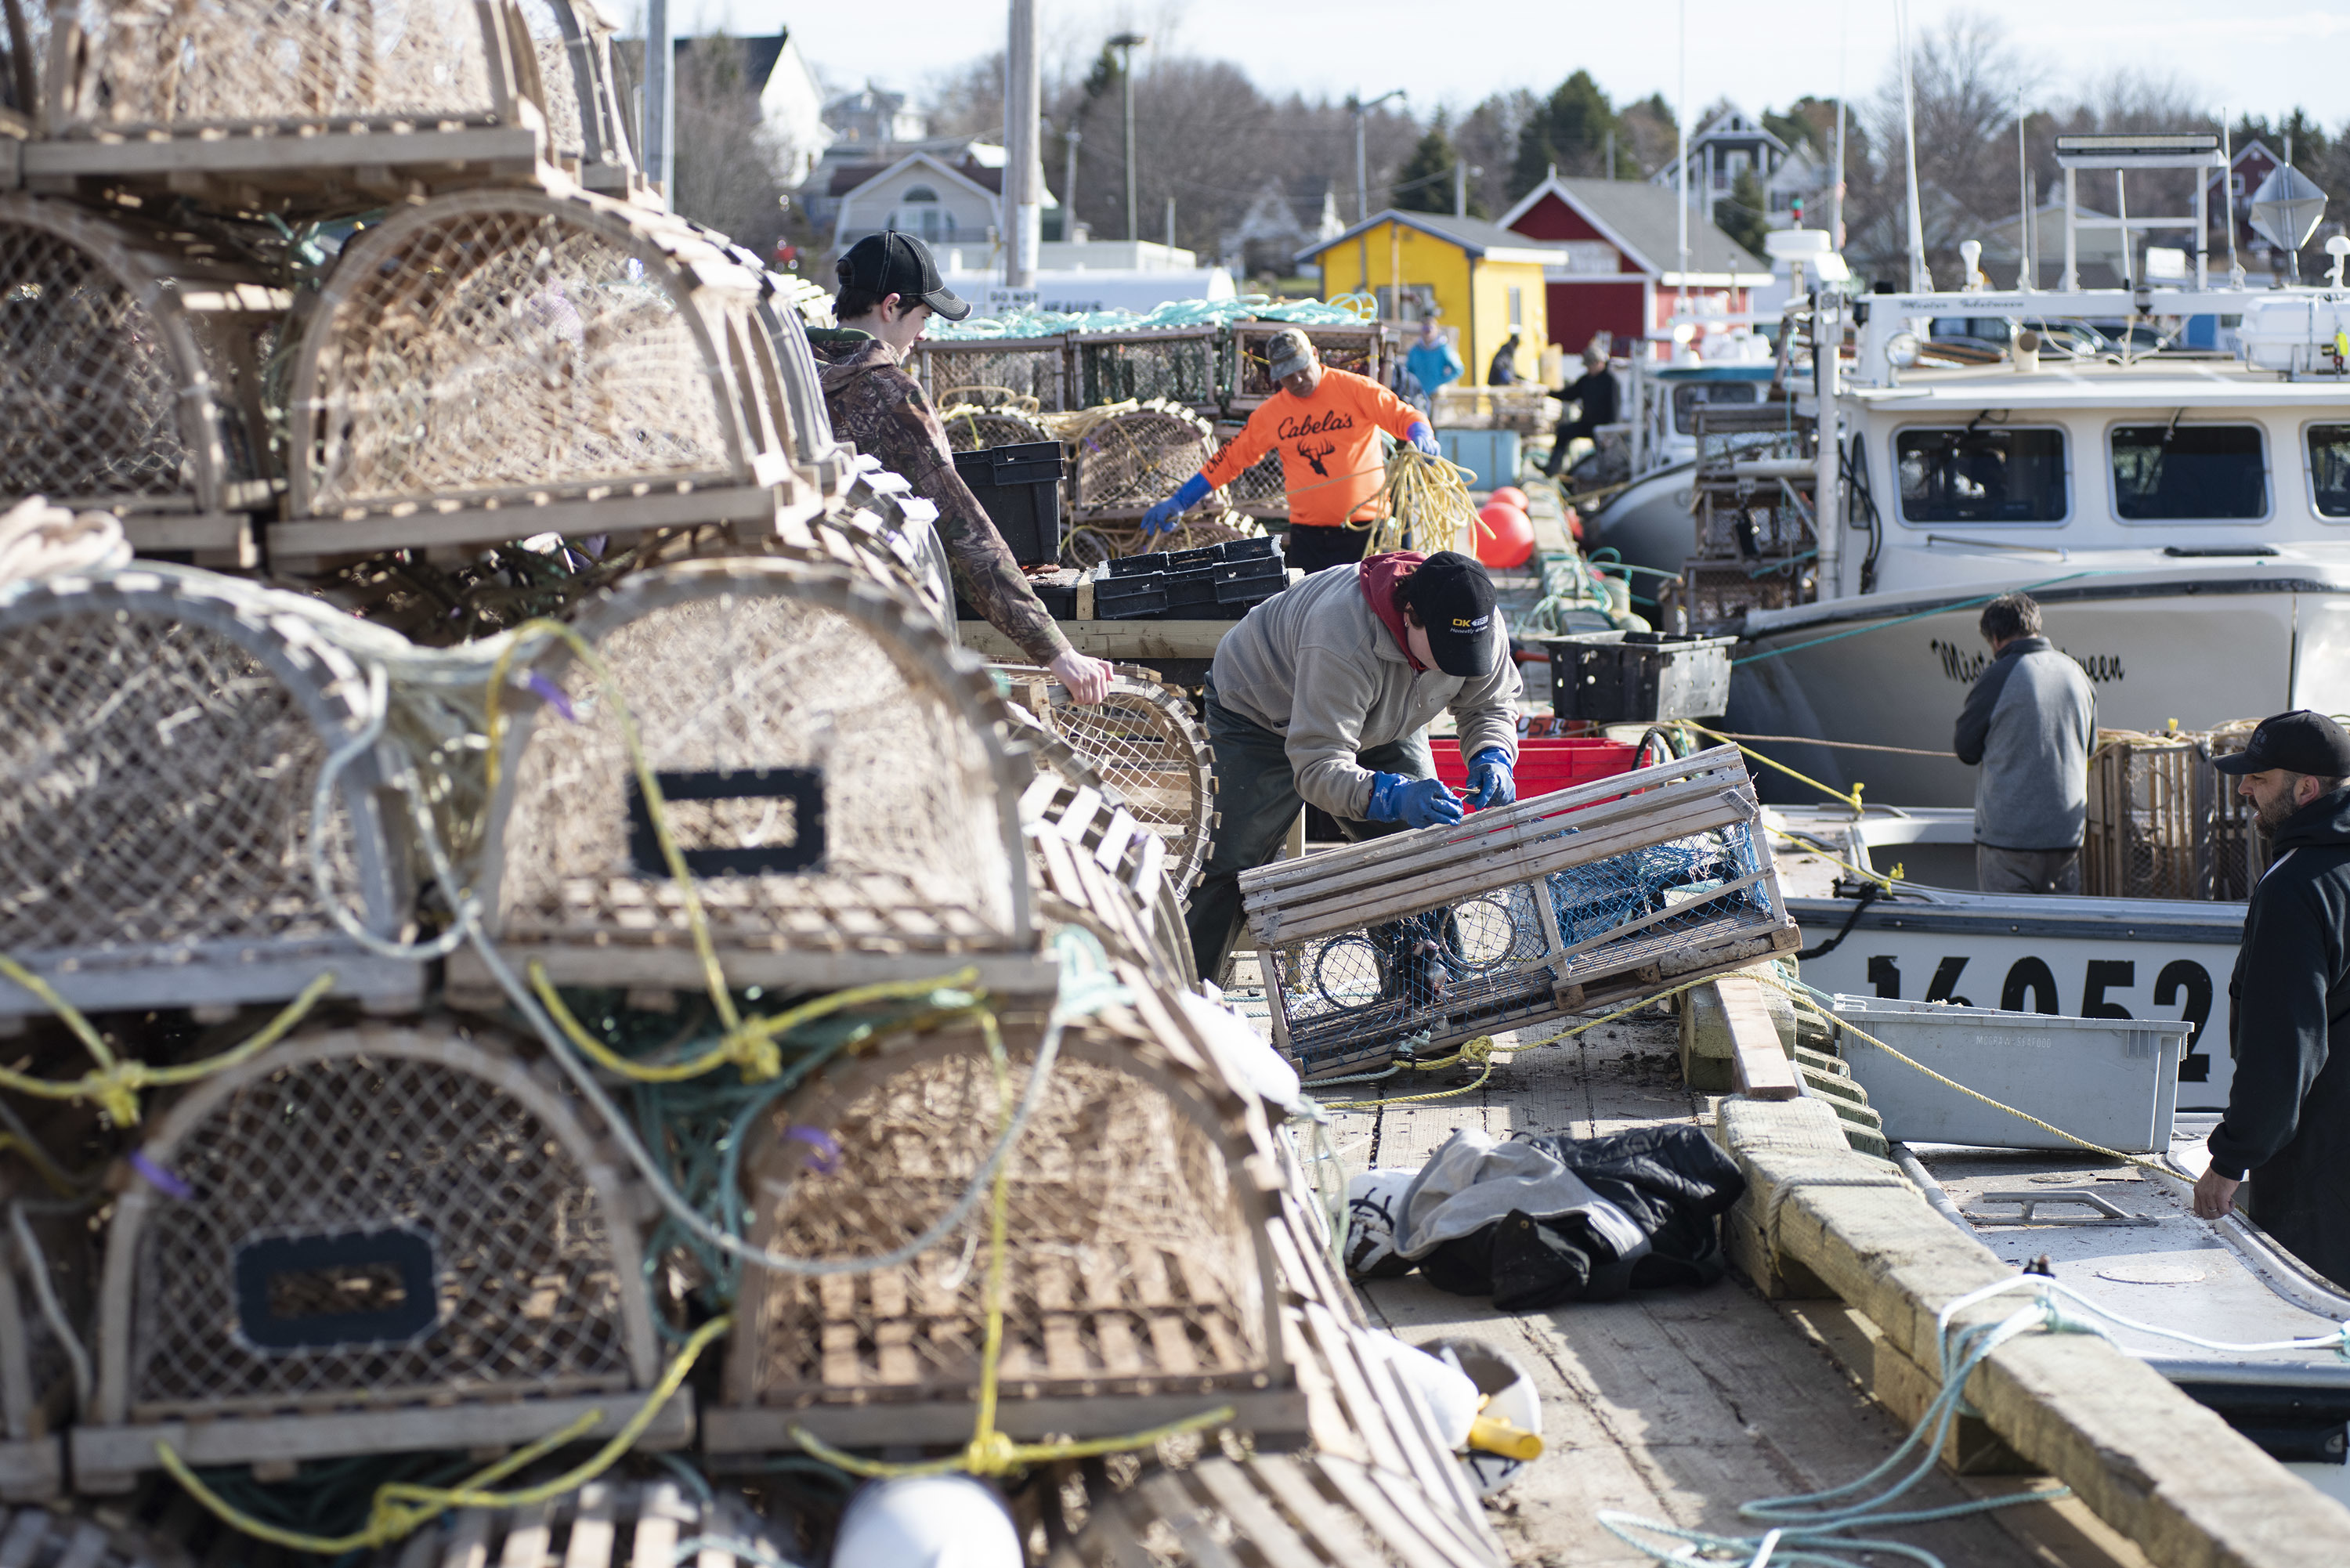 When most of the boats are docked and loading traps there is not much room on the wharf. (Brian McInnis)